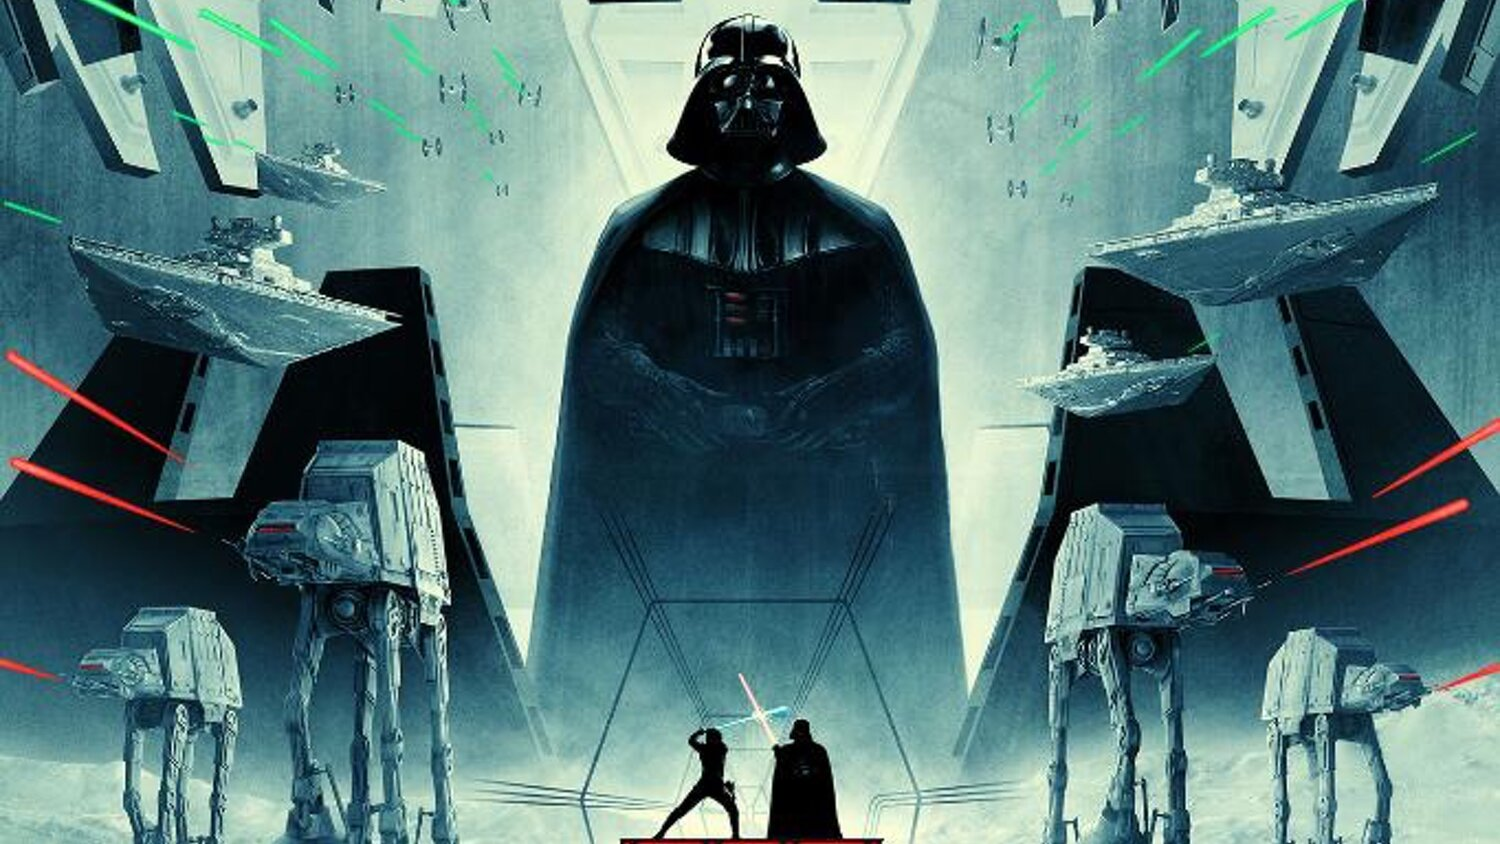 Stories Revealed For Star Wars From A Certain Point Of View The Empire Strikes Back Geektyrant